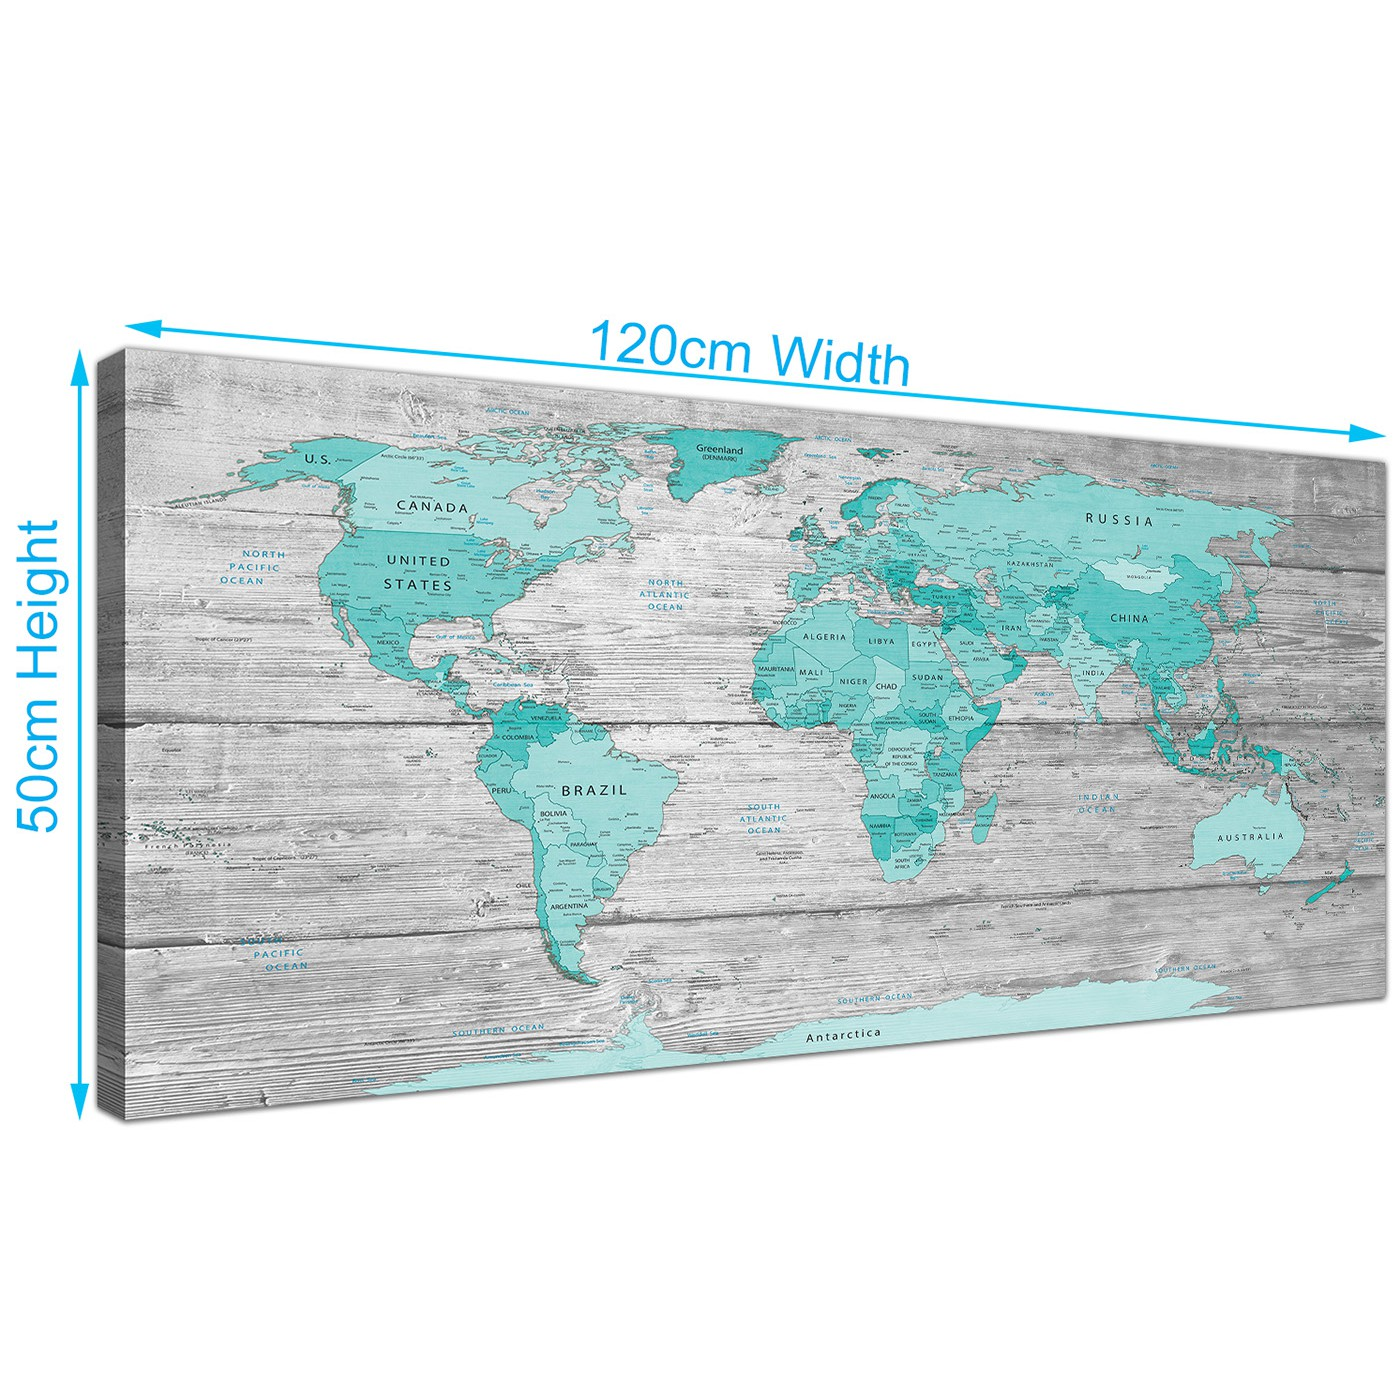 Large teal grey map of world atlas canvas wall art print 120cm wide display gallery item 3 gumiabroncs Gallery